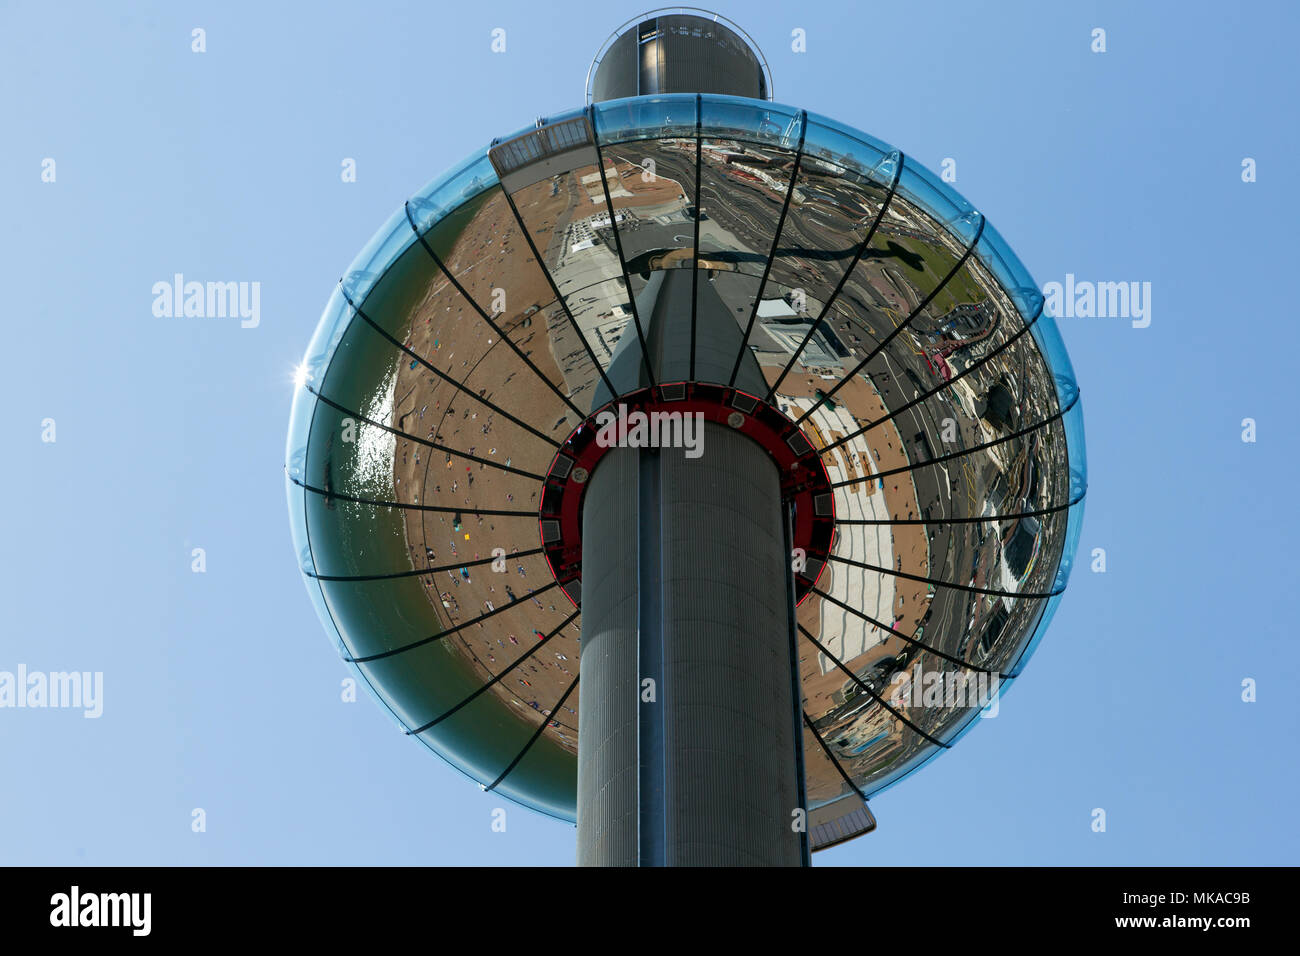 Brighton & Hove Beach, East Sussex, UK. 7th May 2018. Brighton & Hove Beach Bank Holiday as tempretures reach record levels for a early May holiday weather. This image captured the reflection from underneath the I360 Tower.City of Brighton & Hove Beach, East Sussex, UK. 7th May 2018 Credit: David Smith/Alamy Live News - Stock Image